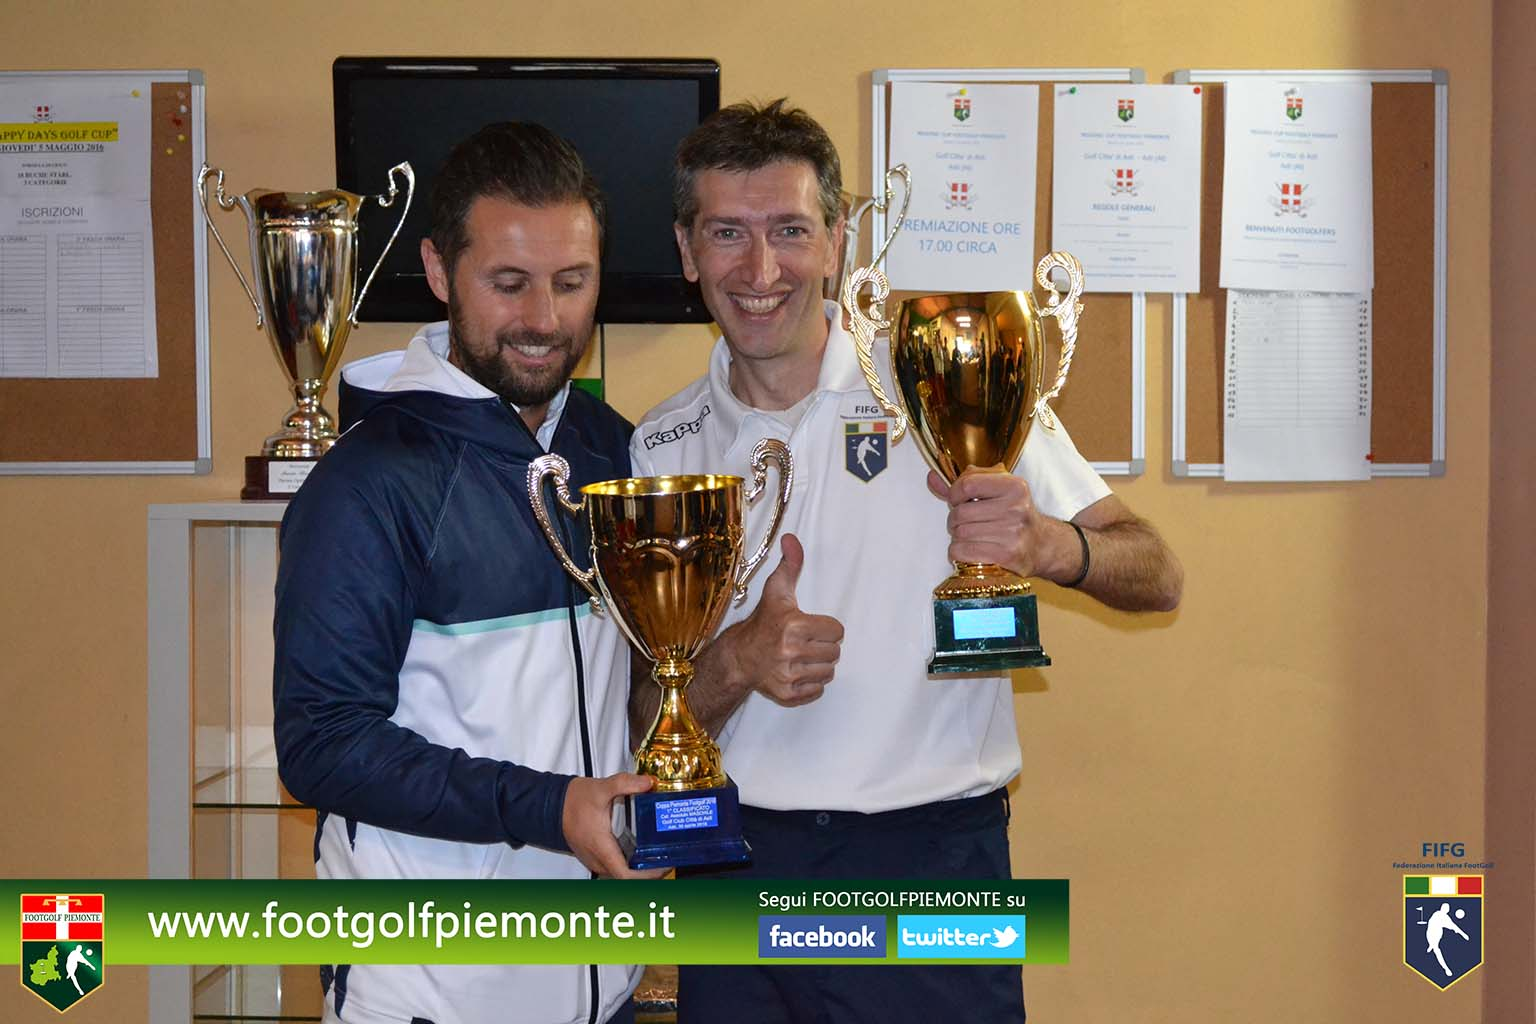 FOTO 9 Regions' Cup Footgolf Piemonte 2016 Golf Città di Asti (At) 30apr16-141